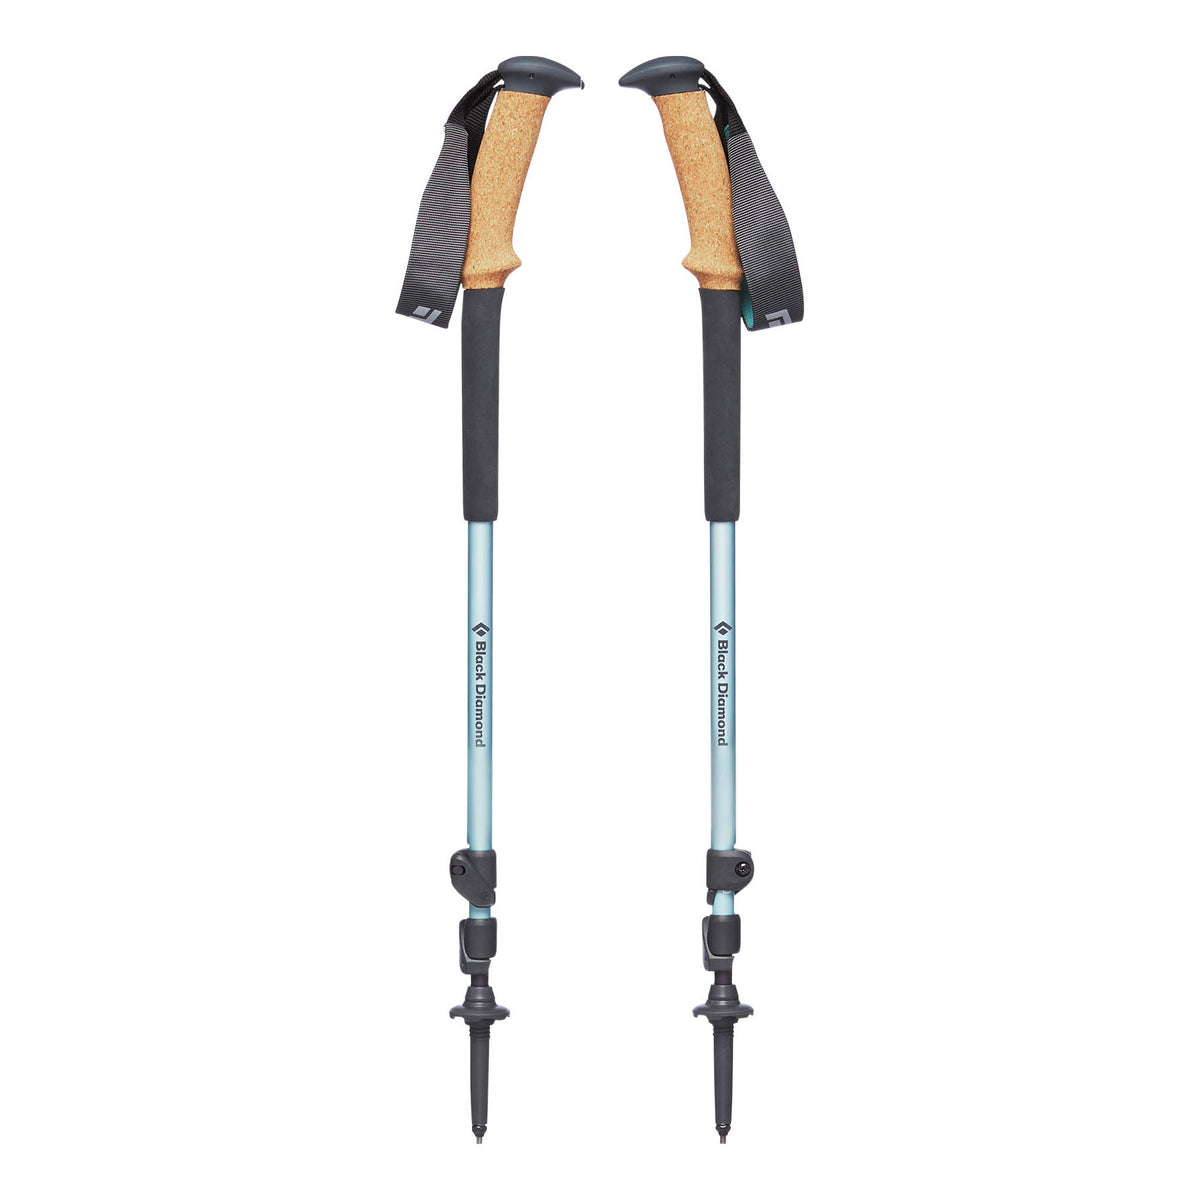 Pair of Black Diamond Trail Ergo Cork Women's poles, shown collapsed with angled cork handle